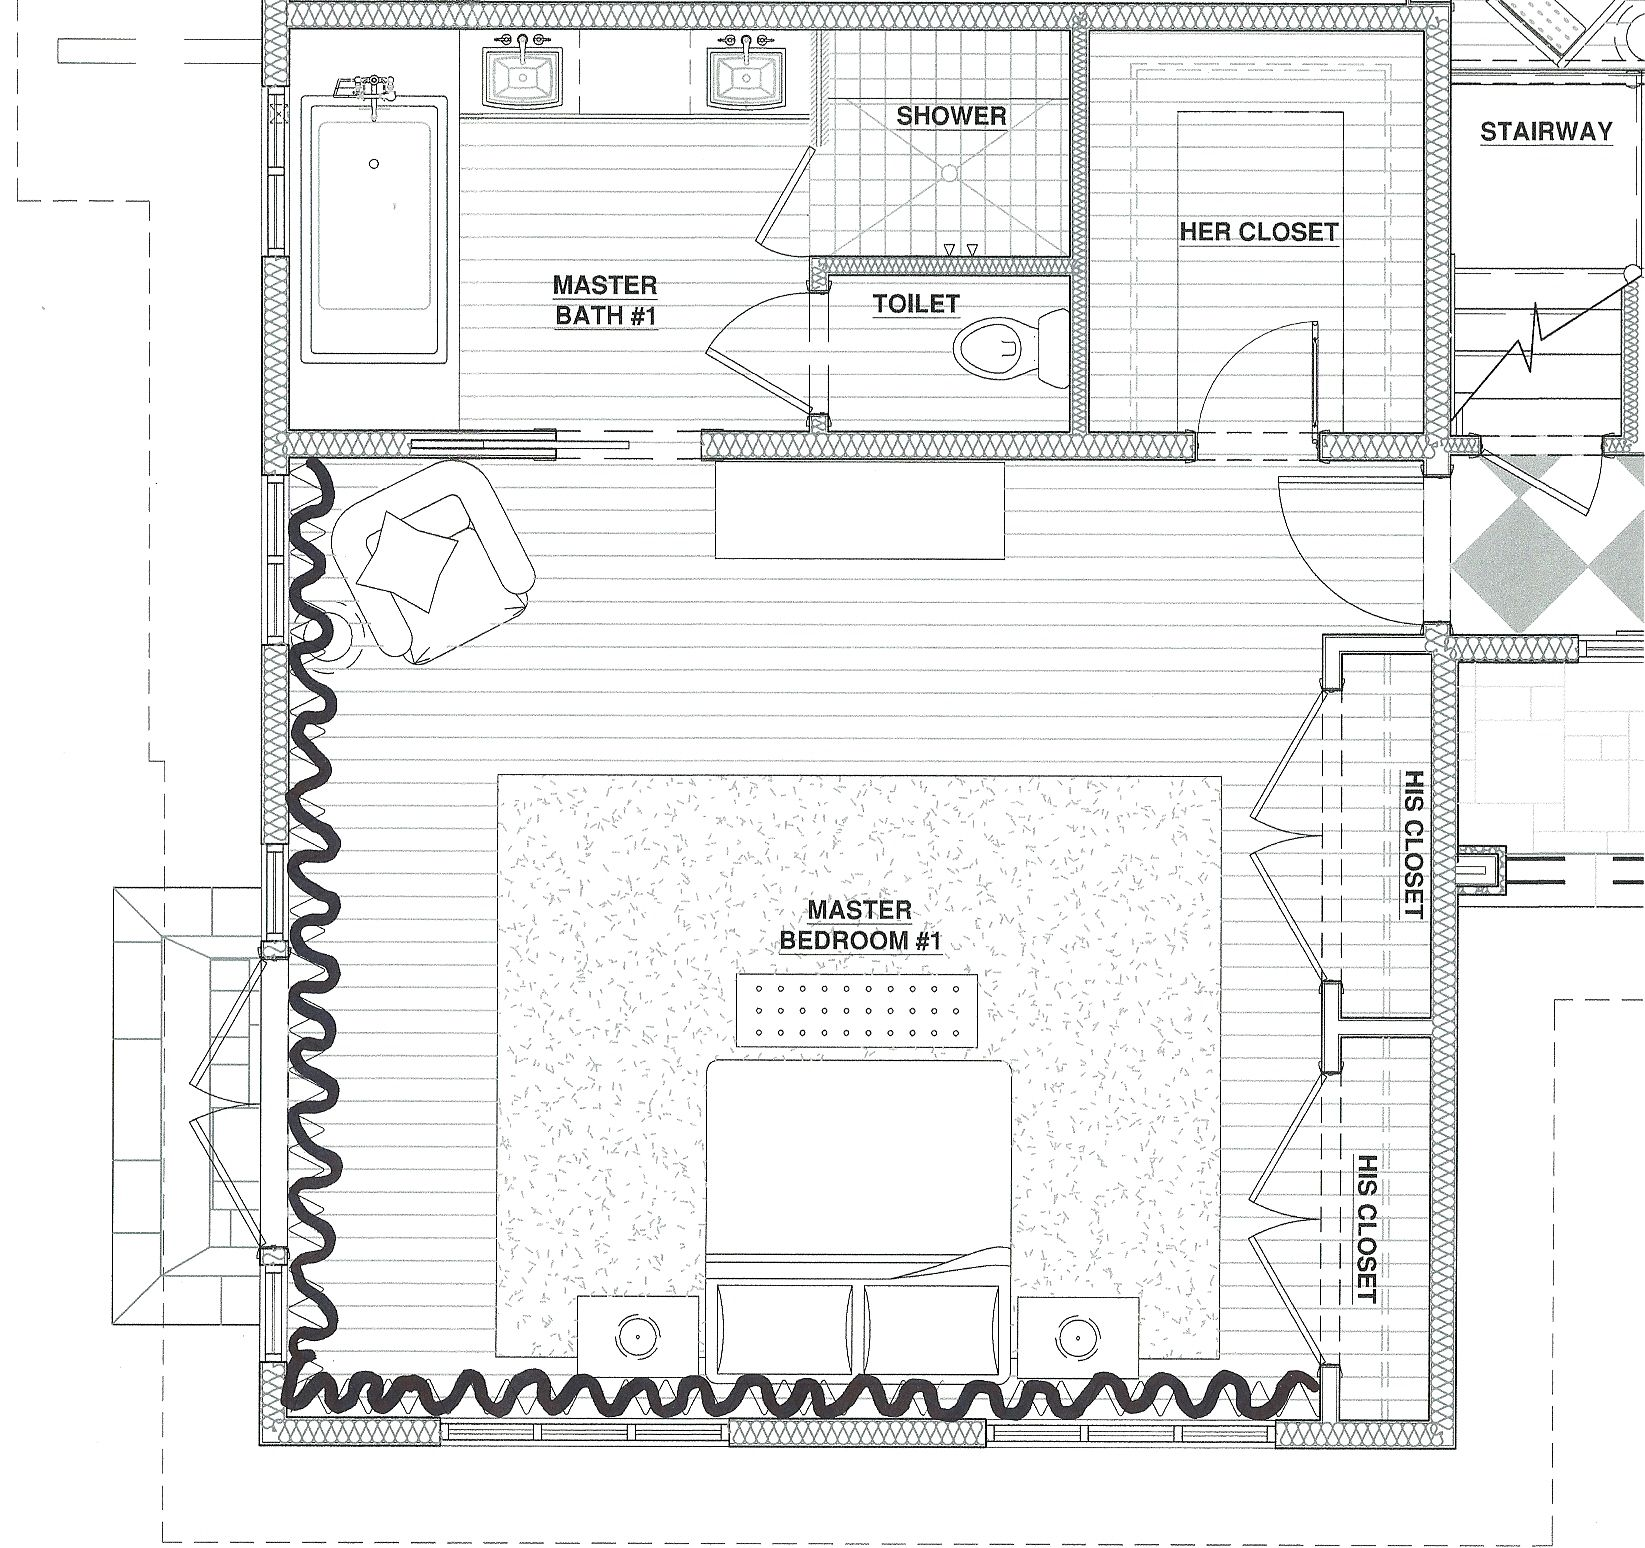 Master bedroom floor plans picture gallery of the master for 4 bedroom layout design